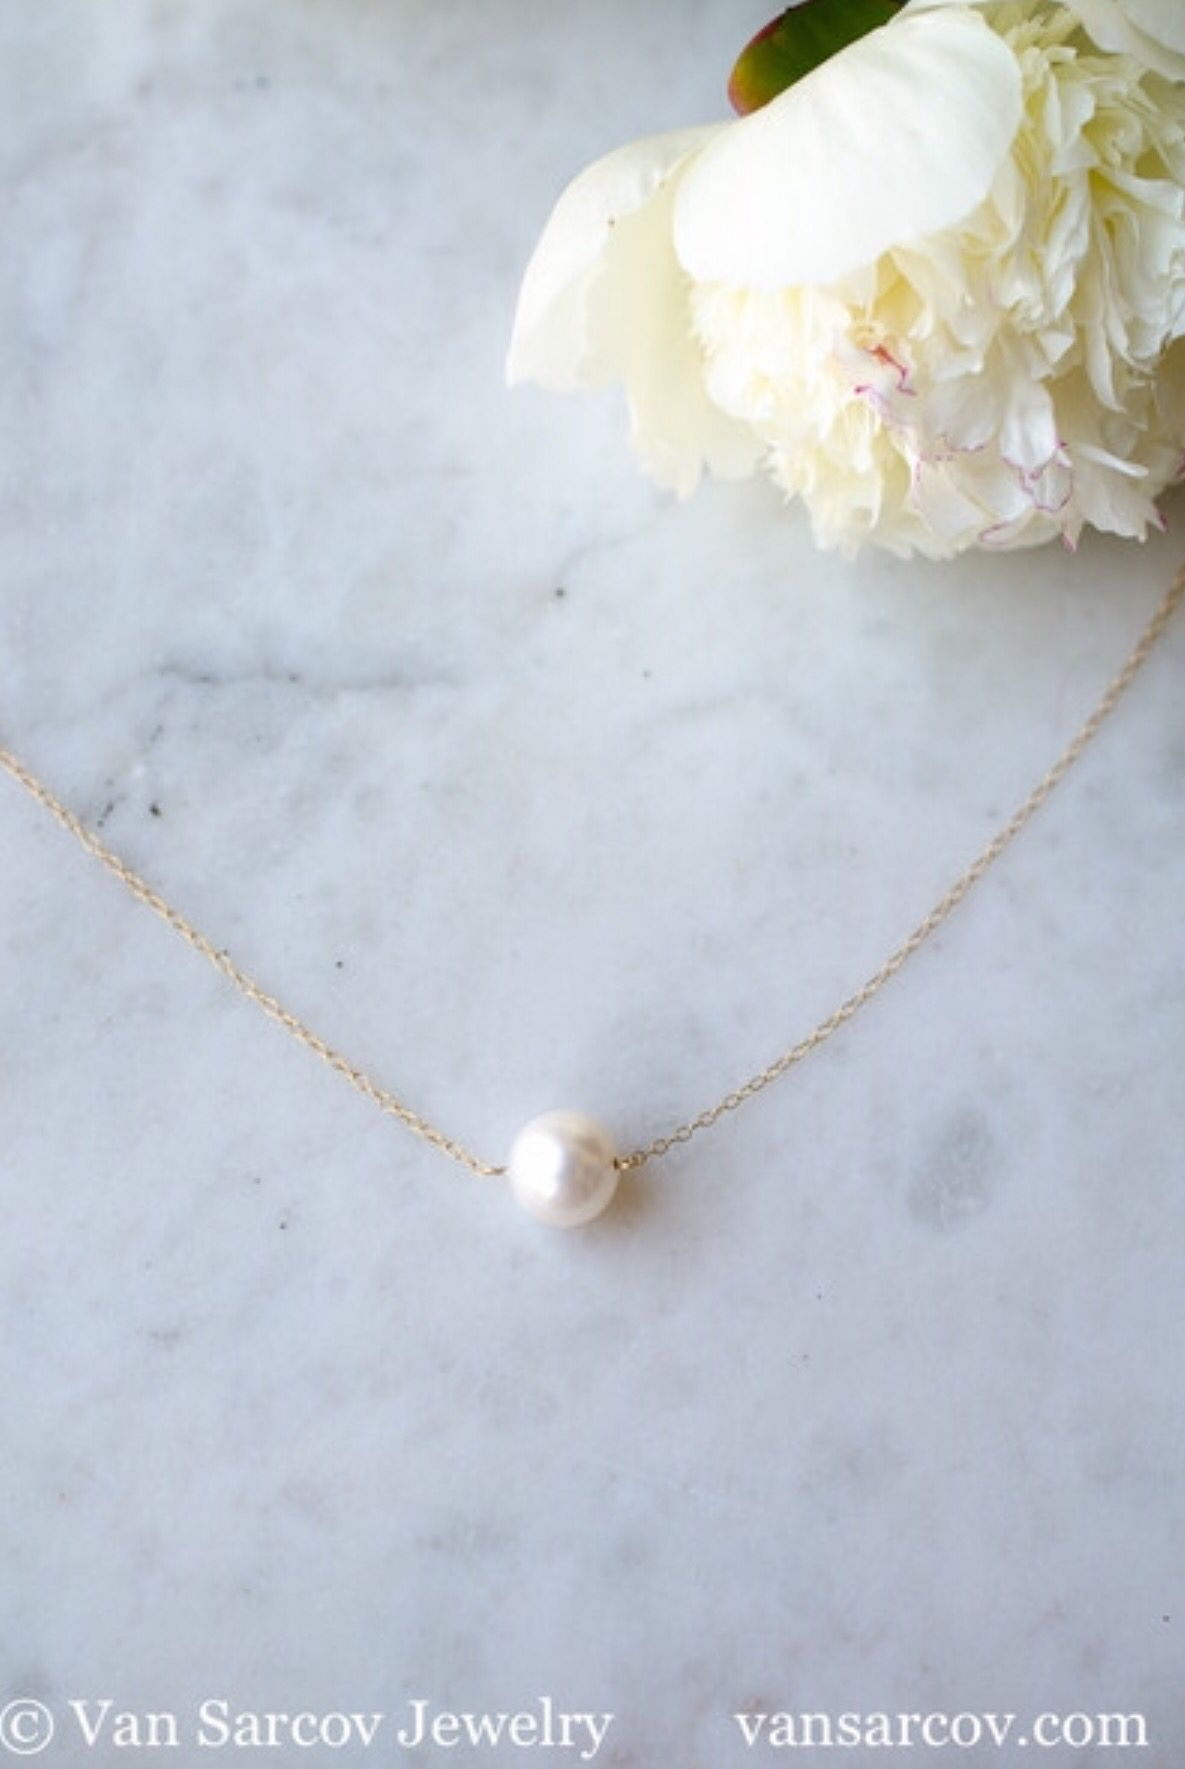 This beautifully handcrafted necklace comes with a single South Sea White Pearl in 14 K solid yellow gold, truly elegant jewelry you can enjoy for many years to come.